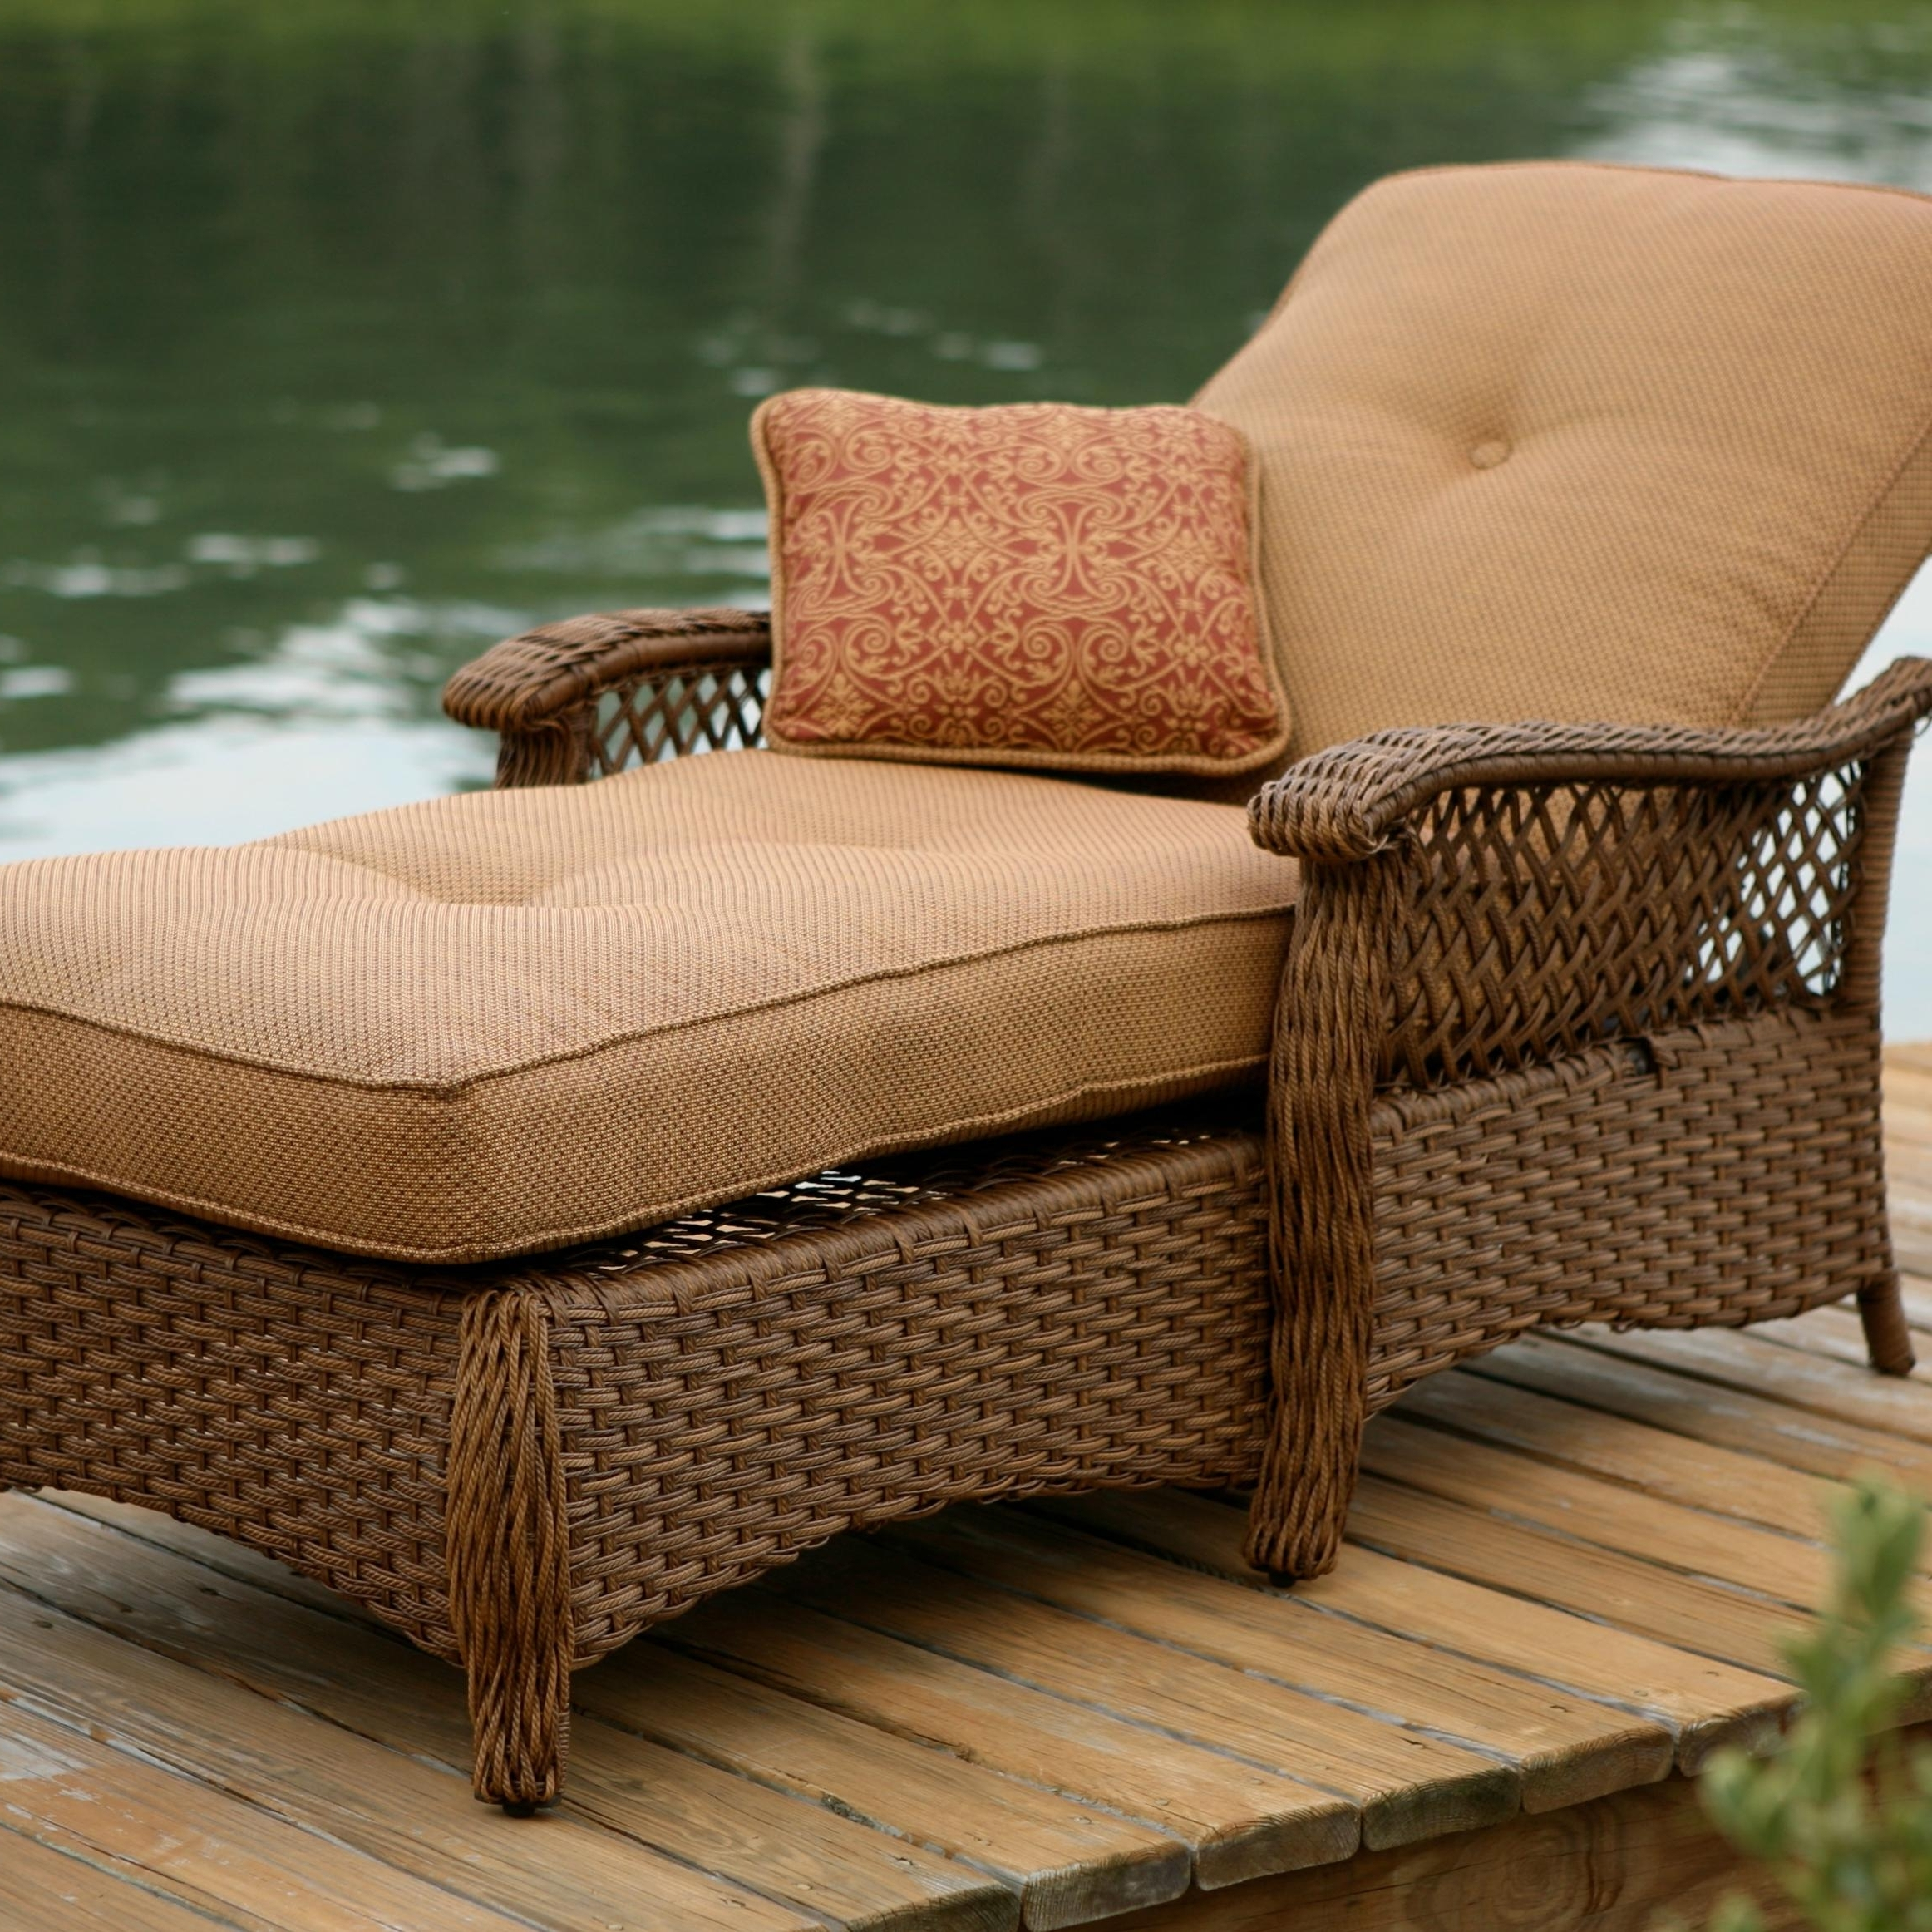 Comfy Outdoor Lounge Chairs • Lounge Chairs Ideas Inside Most Current Comfy Chaise Lounges (View 4 of 15)